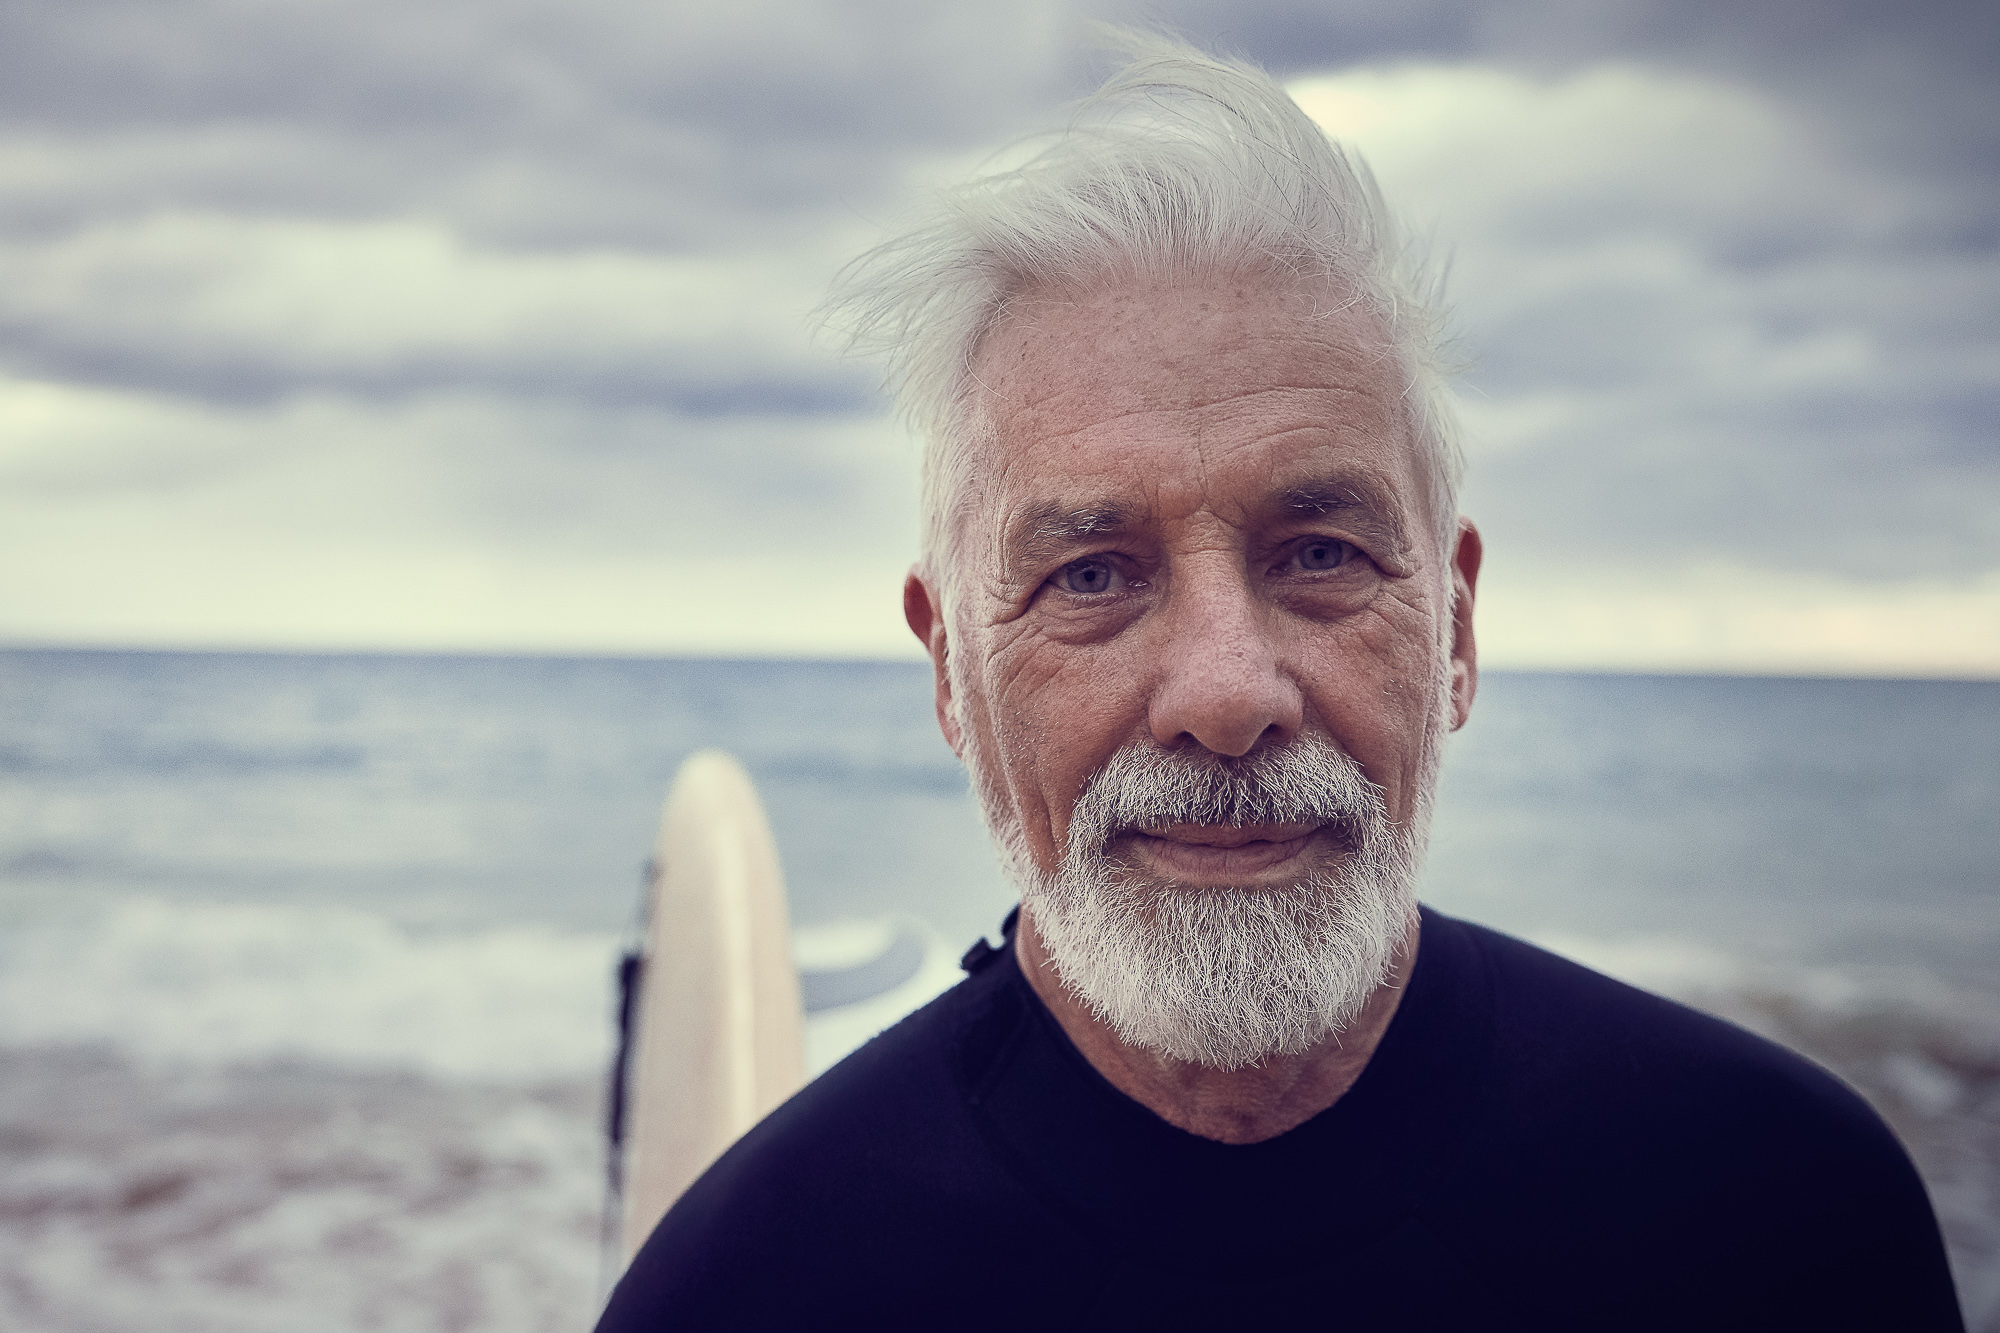 A handsome elderly mangoing for a surf with a friend during a photography campaign in Sydney